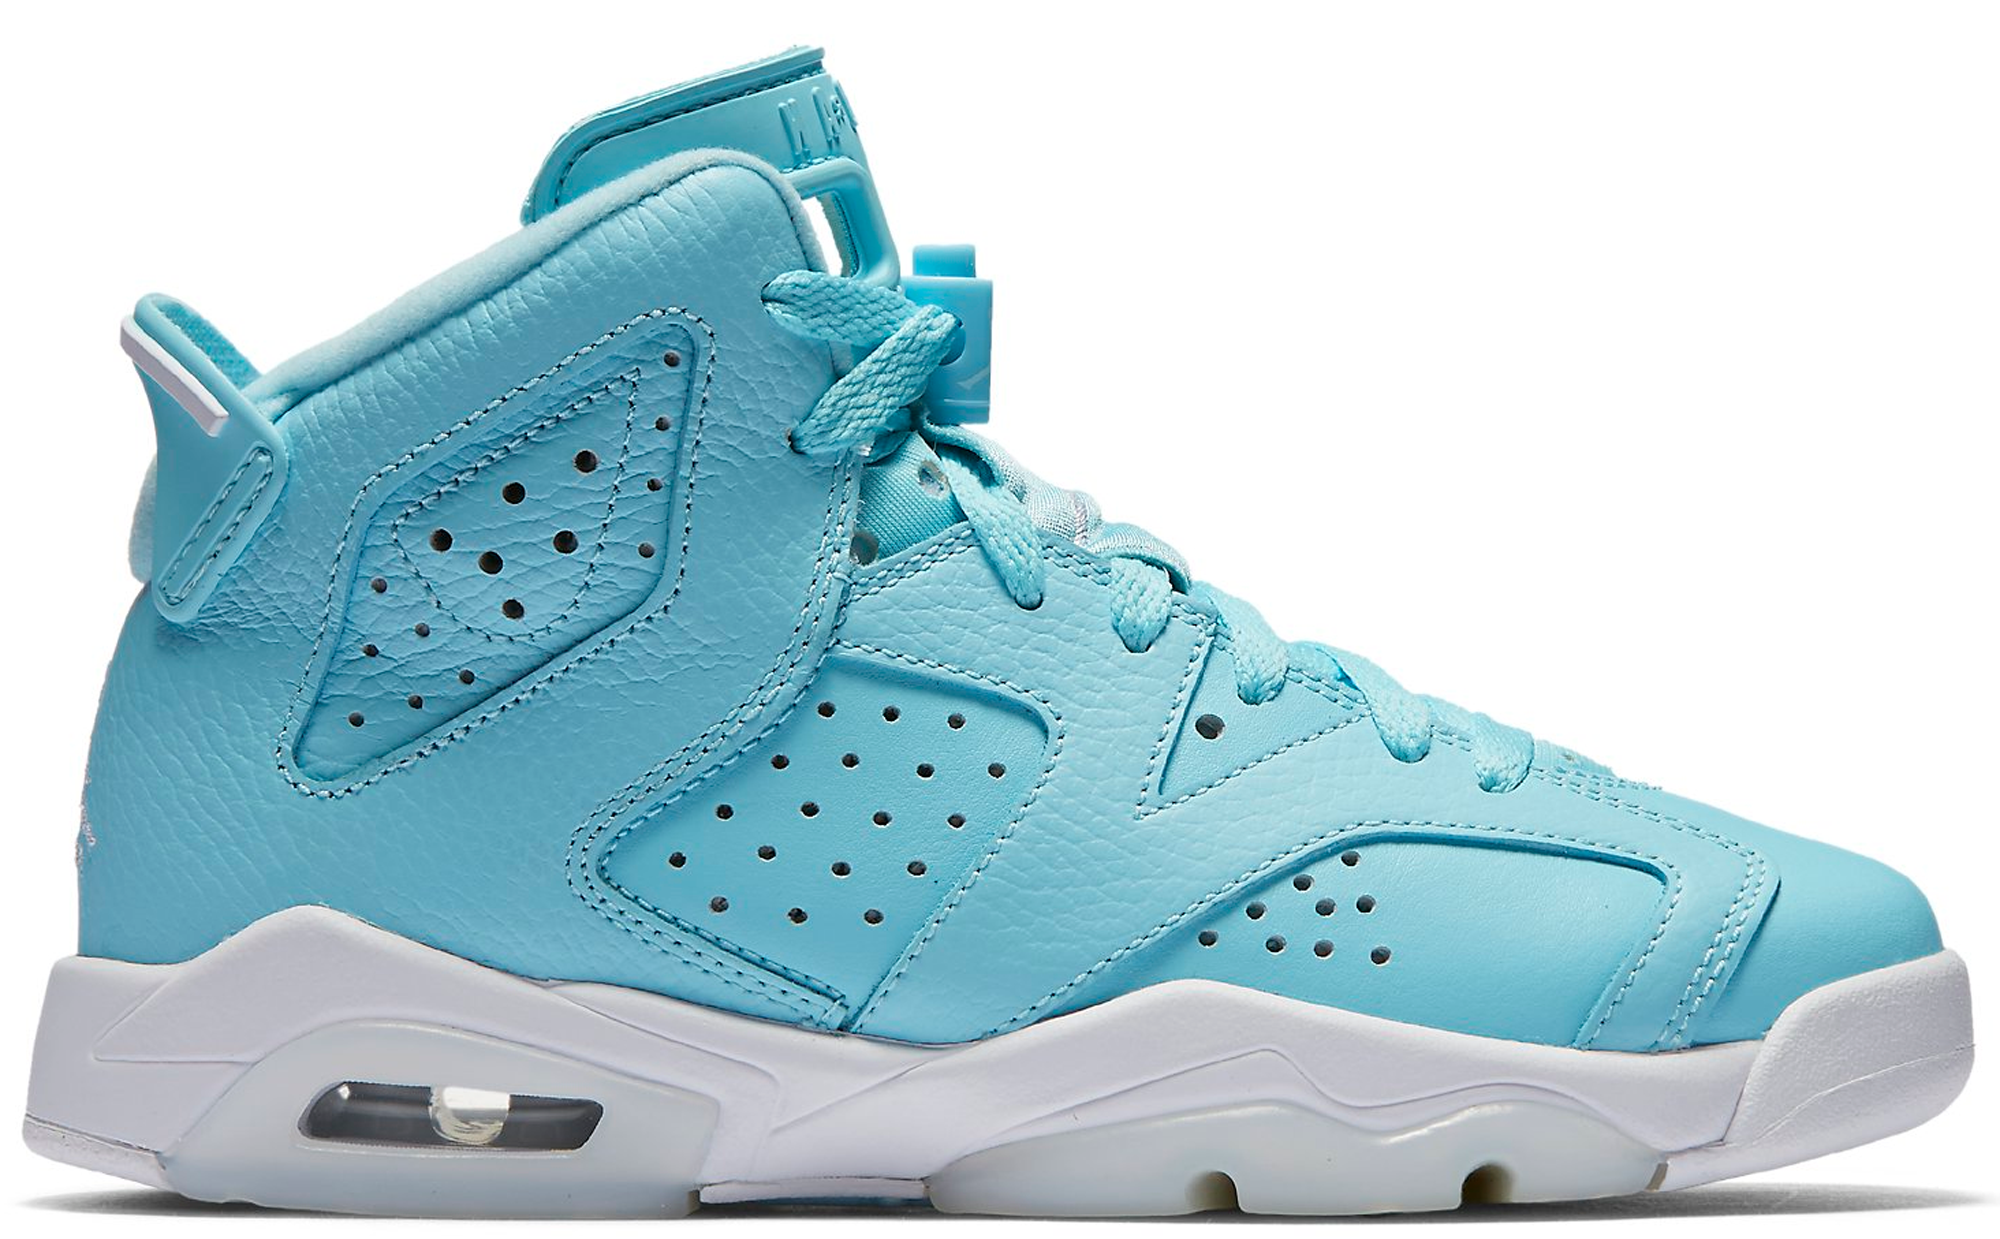 ad635ae3d2a1 Air Jordan 6 Retro Still Blue (GS) - StockX News